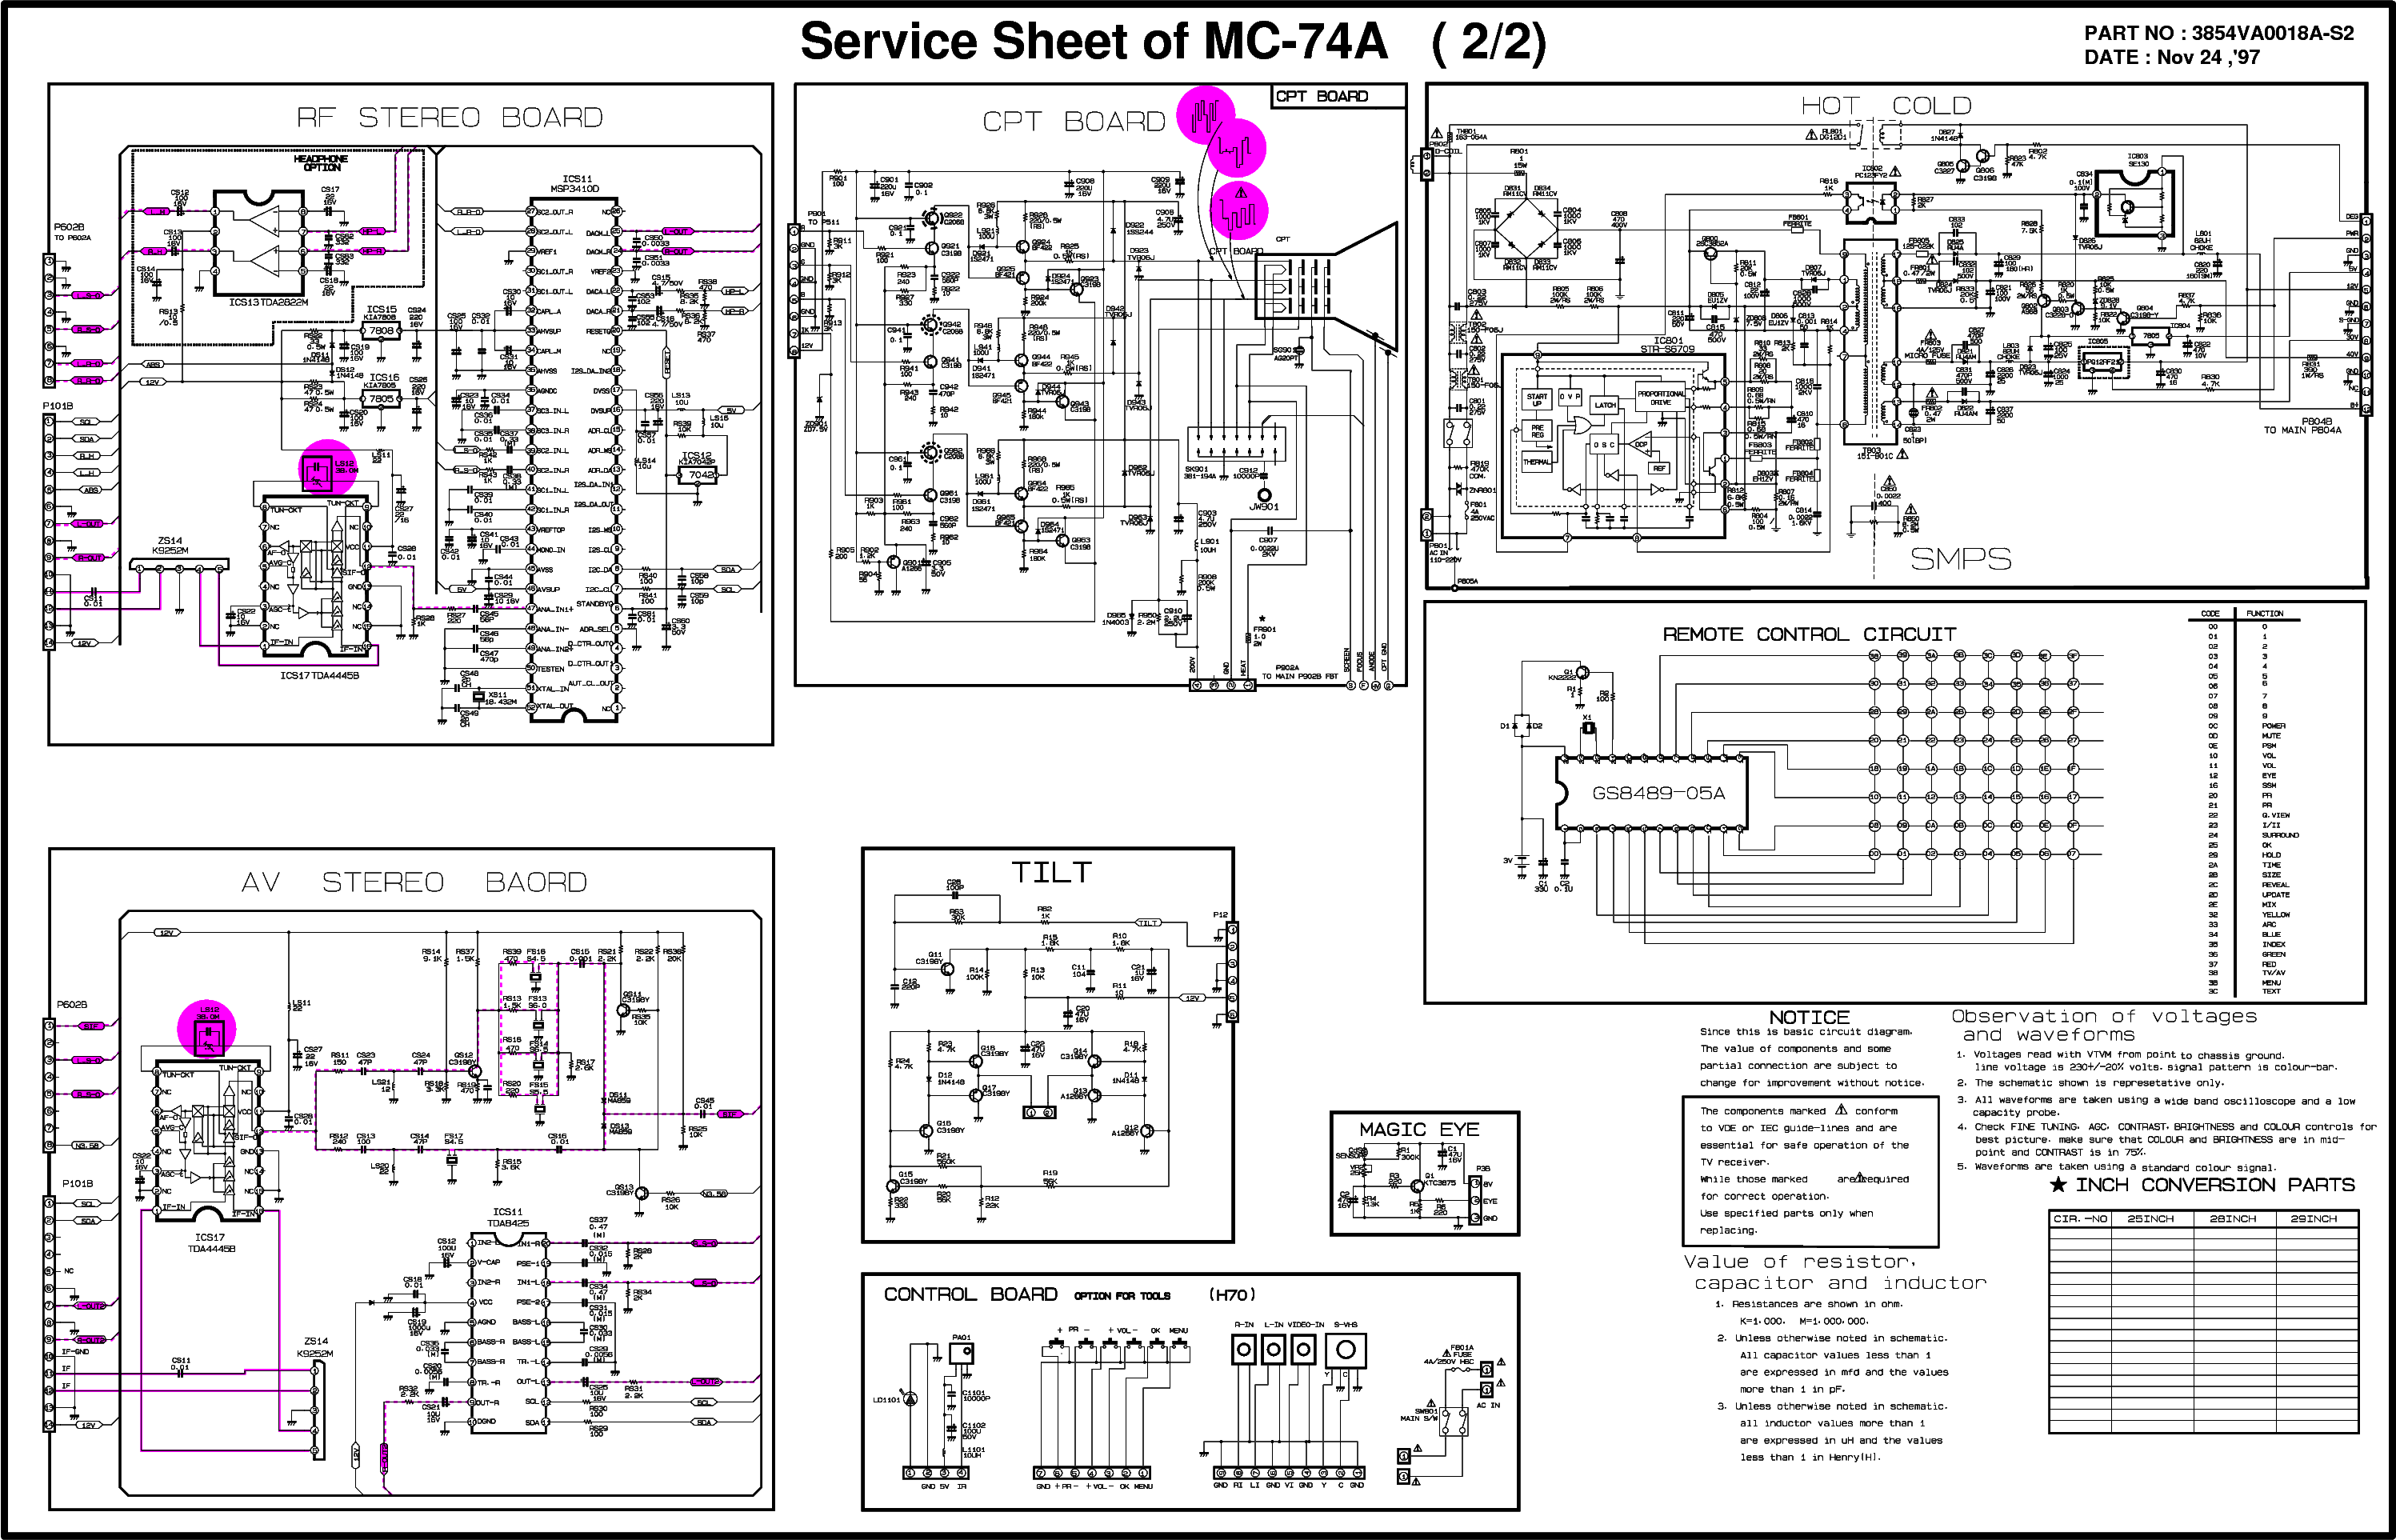 LG CF-29H30,MC74A service manual (2nd page)